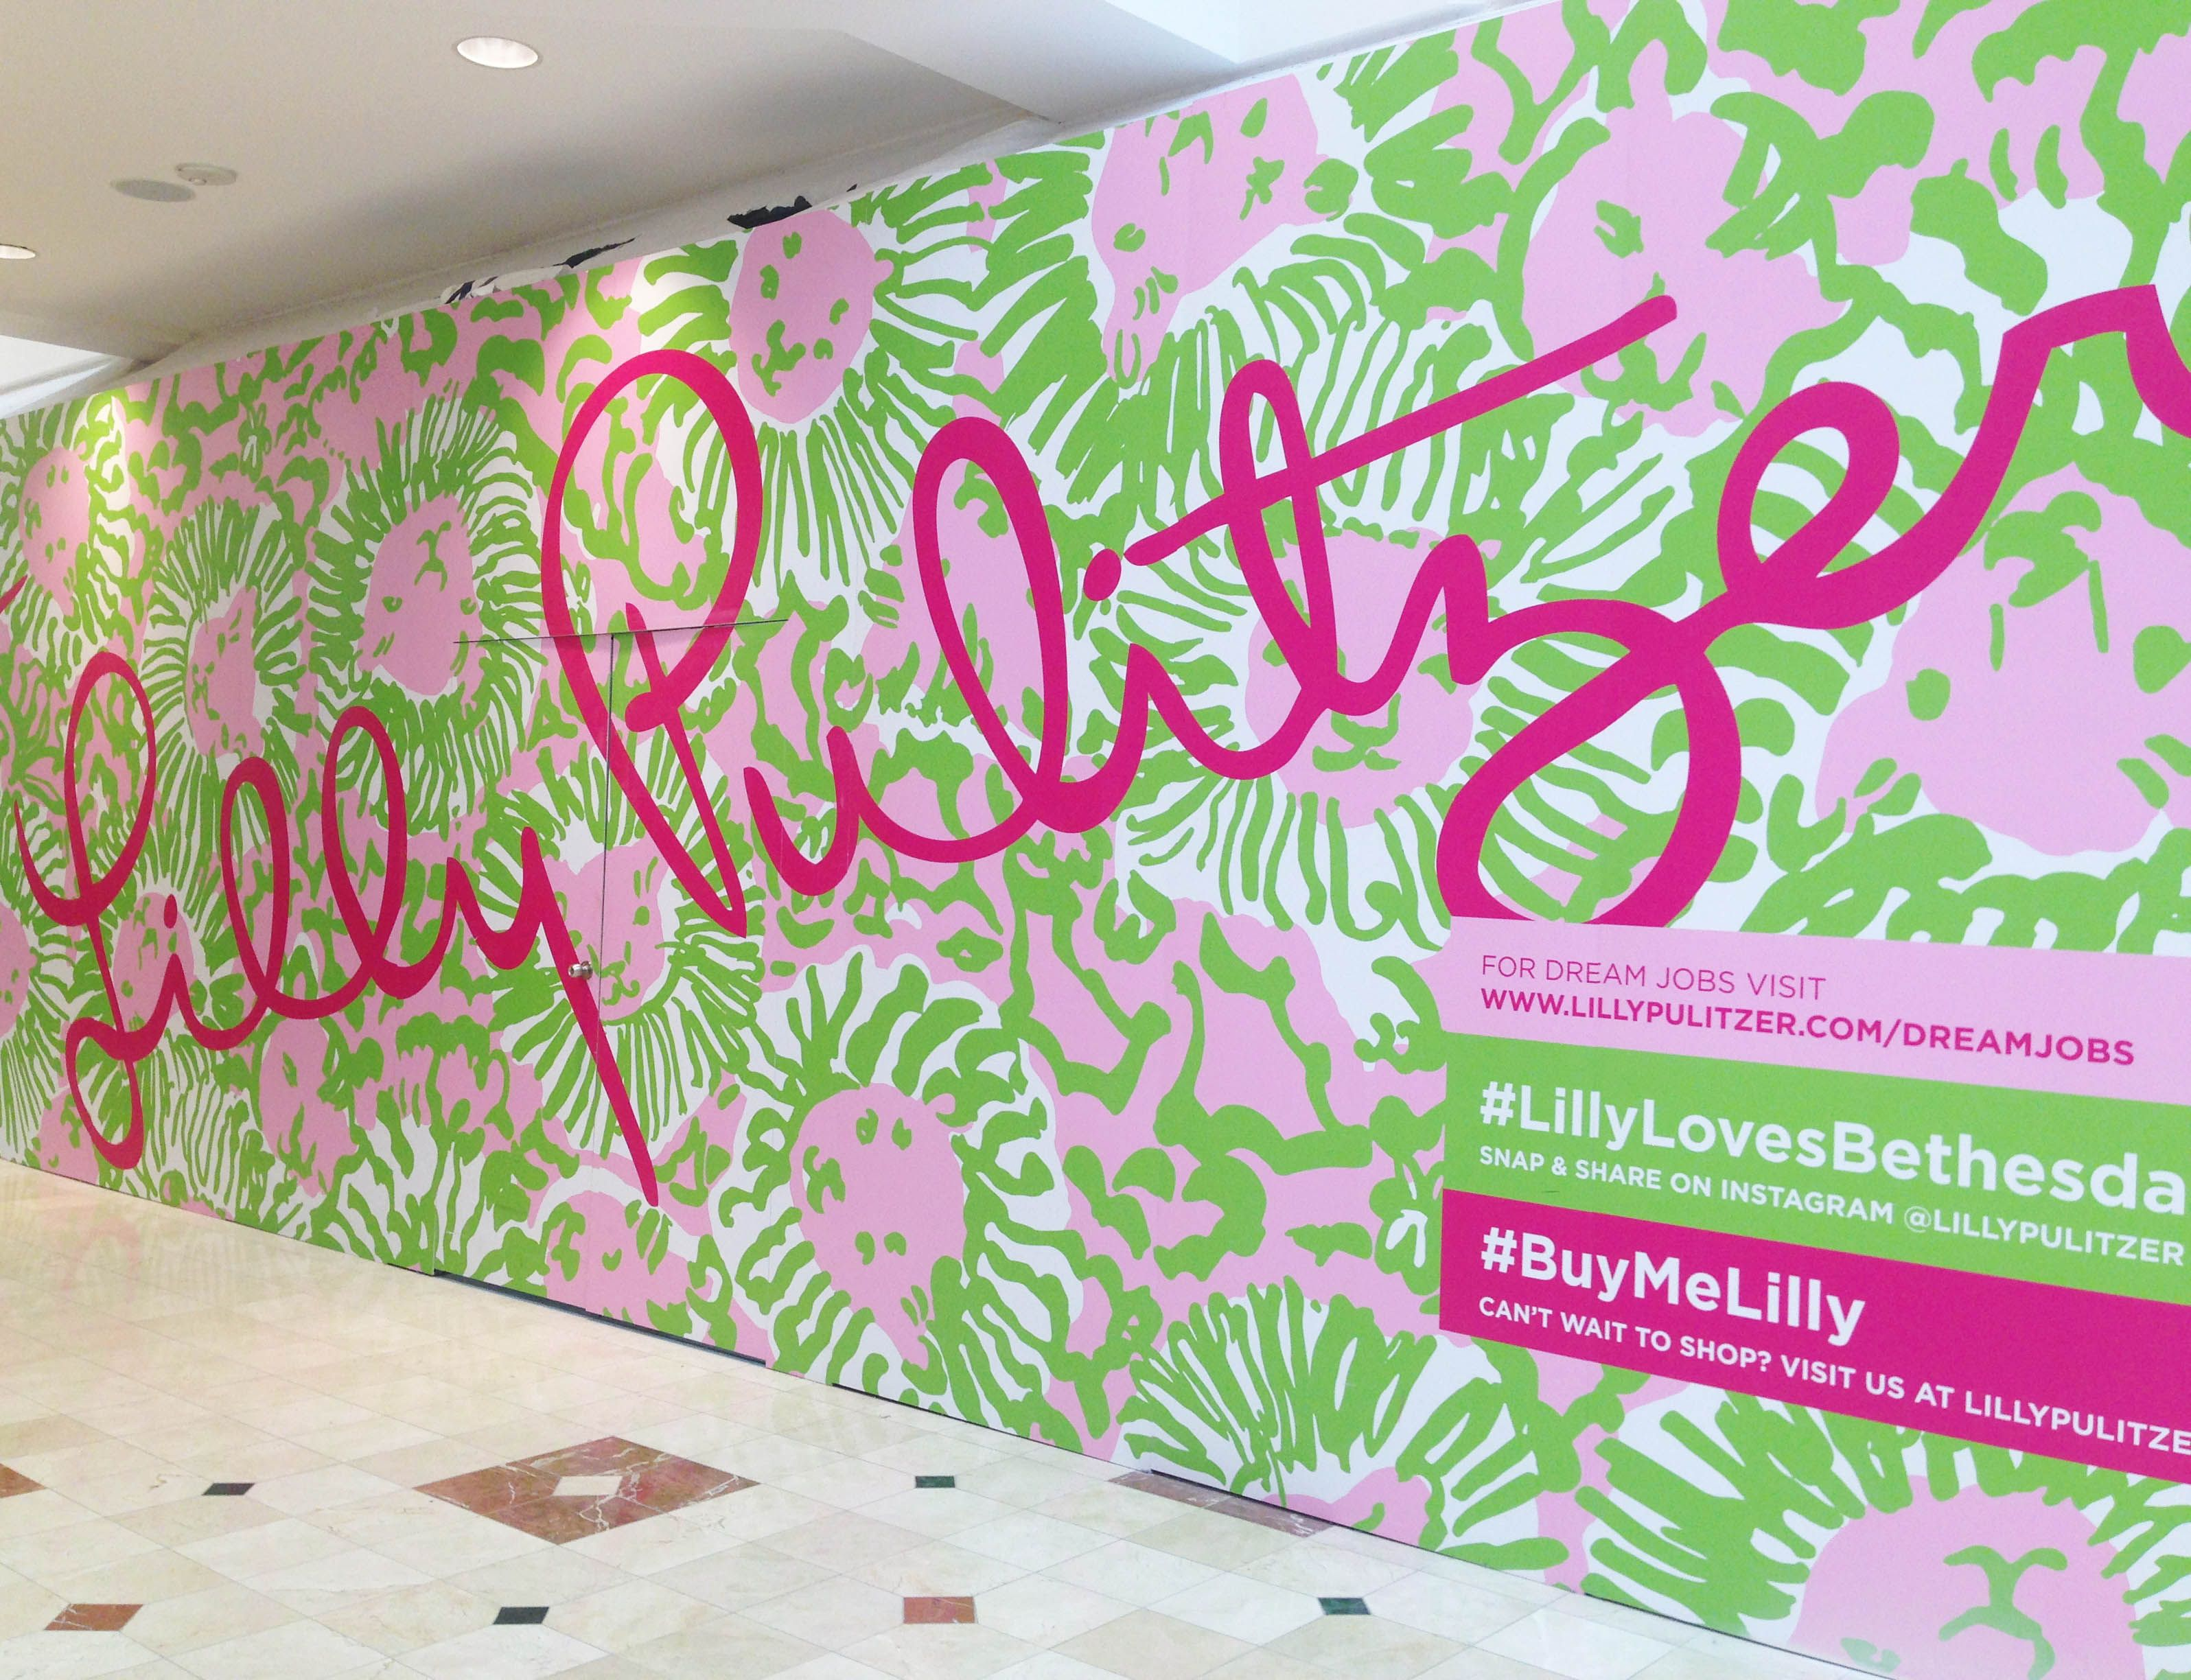 Coming soon... Lilly Pulitzer at Montgomery Mall in Bethesda, MD ...